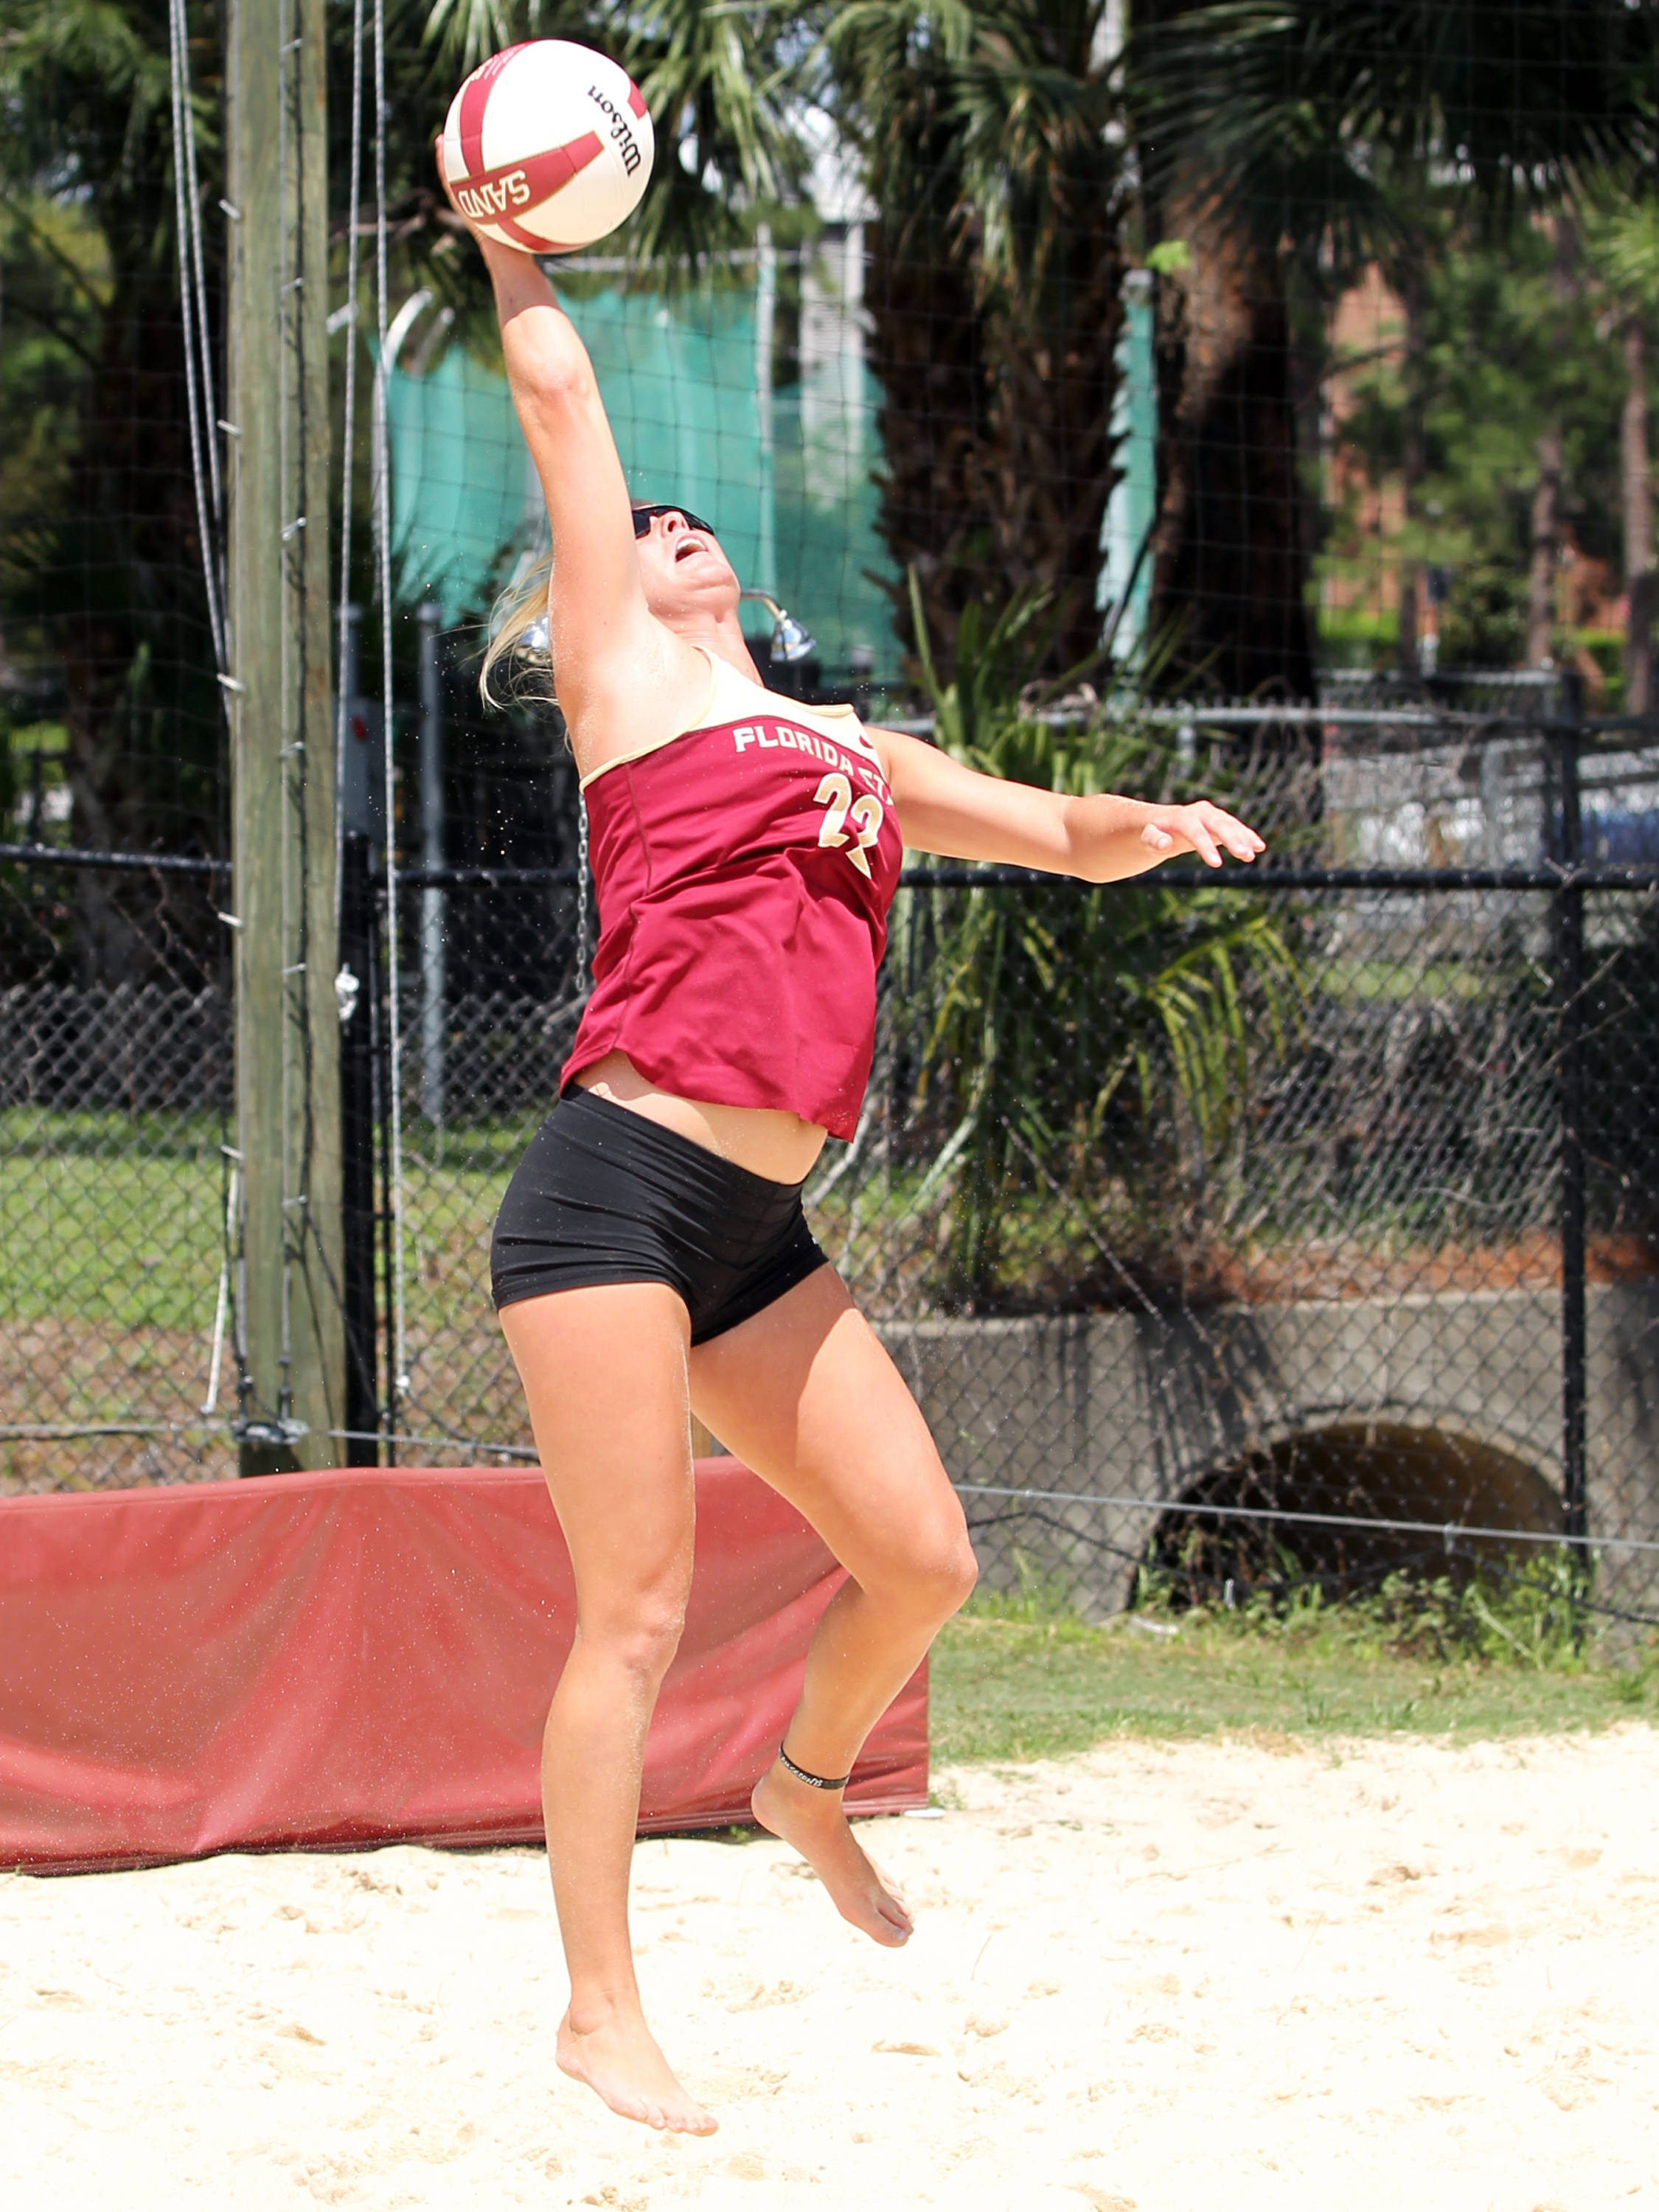 Blyss Harkness, Sand Volleyball Tournament,  04/20/13 . (Photo by Steve Musco)